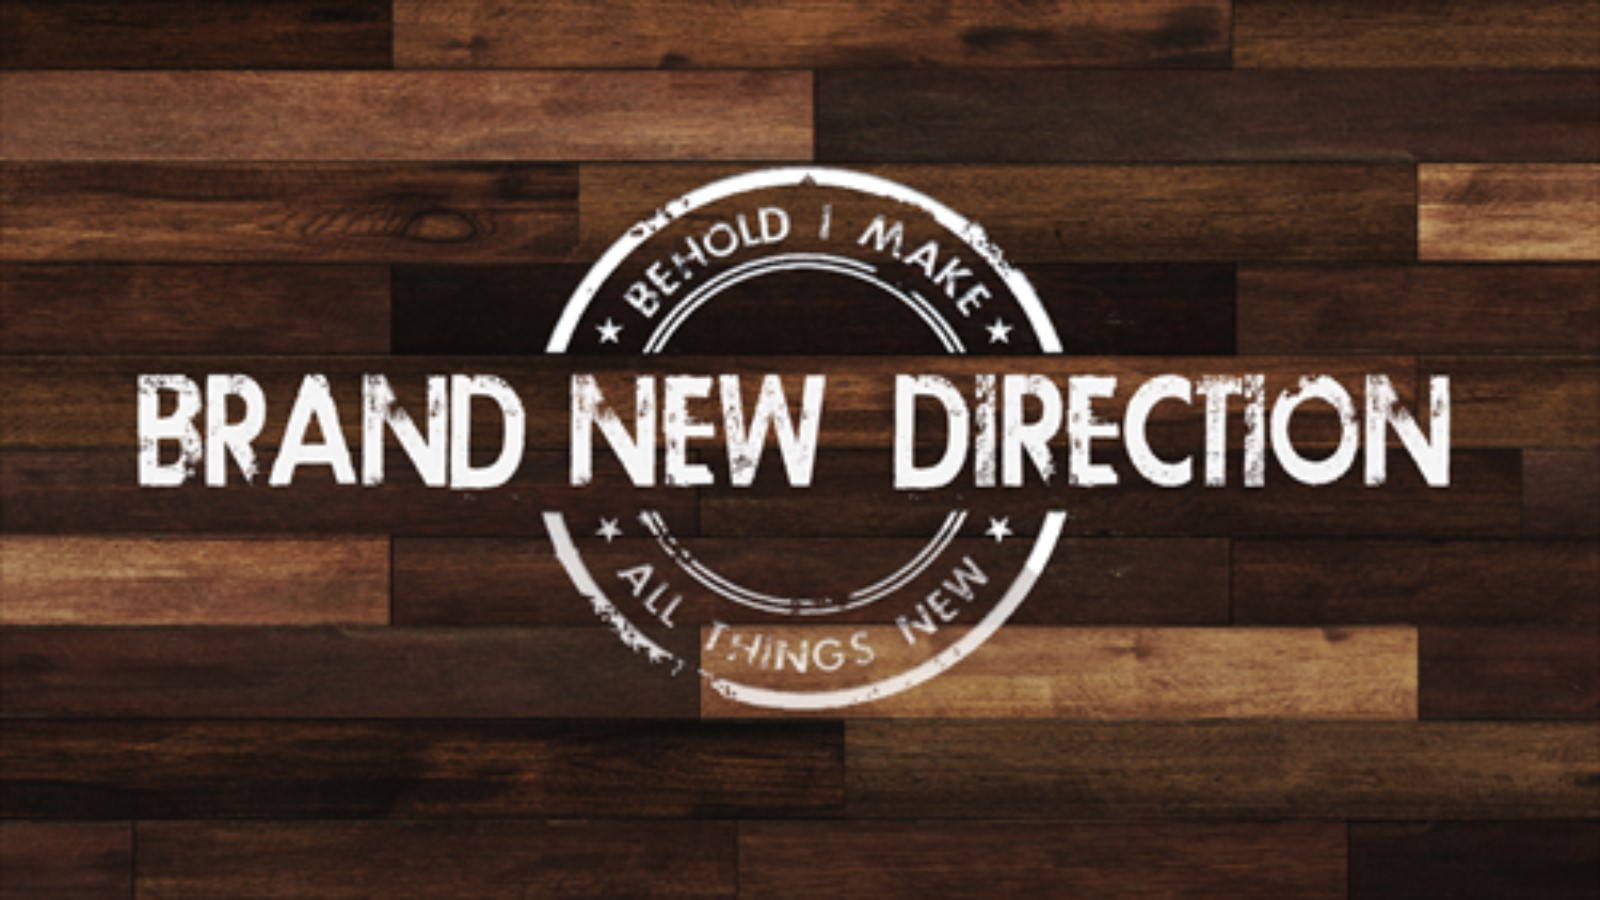 Brand New Direction